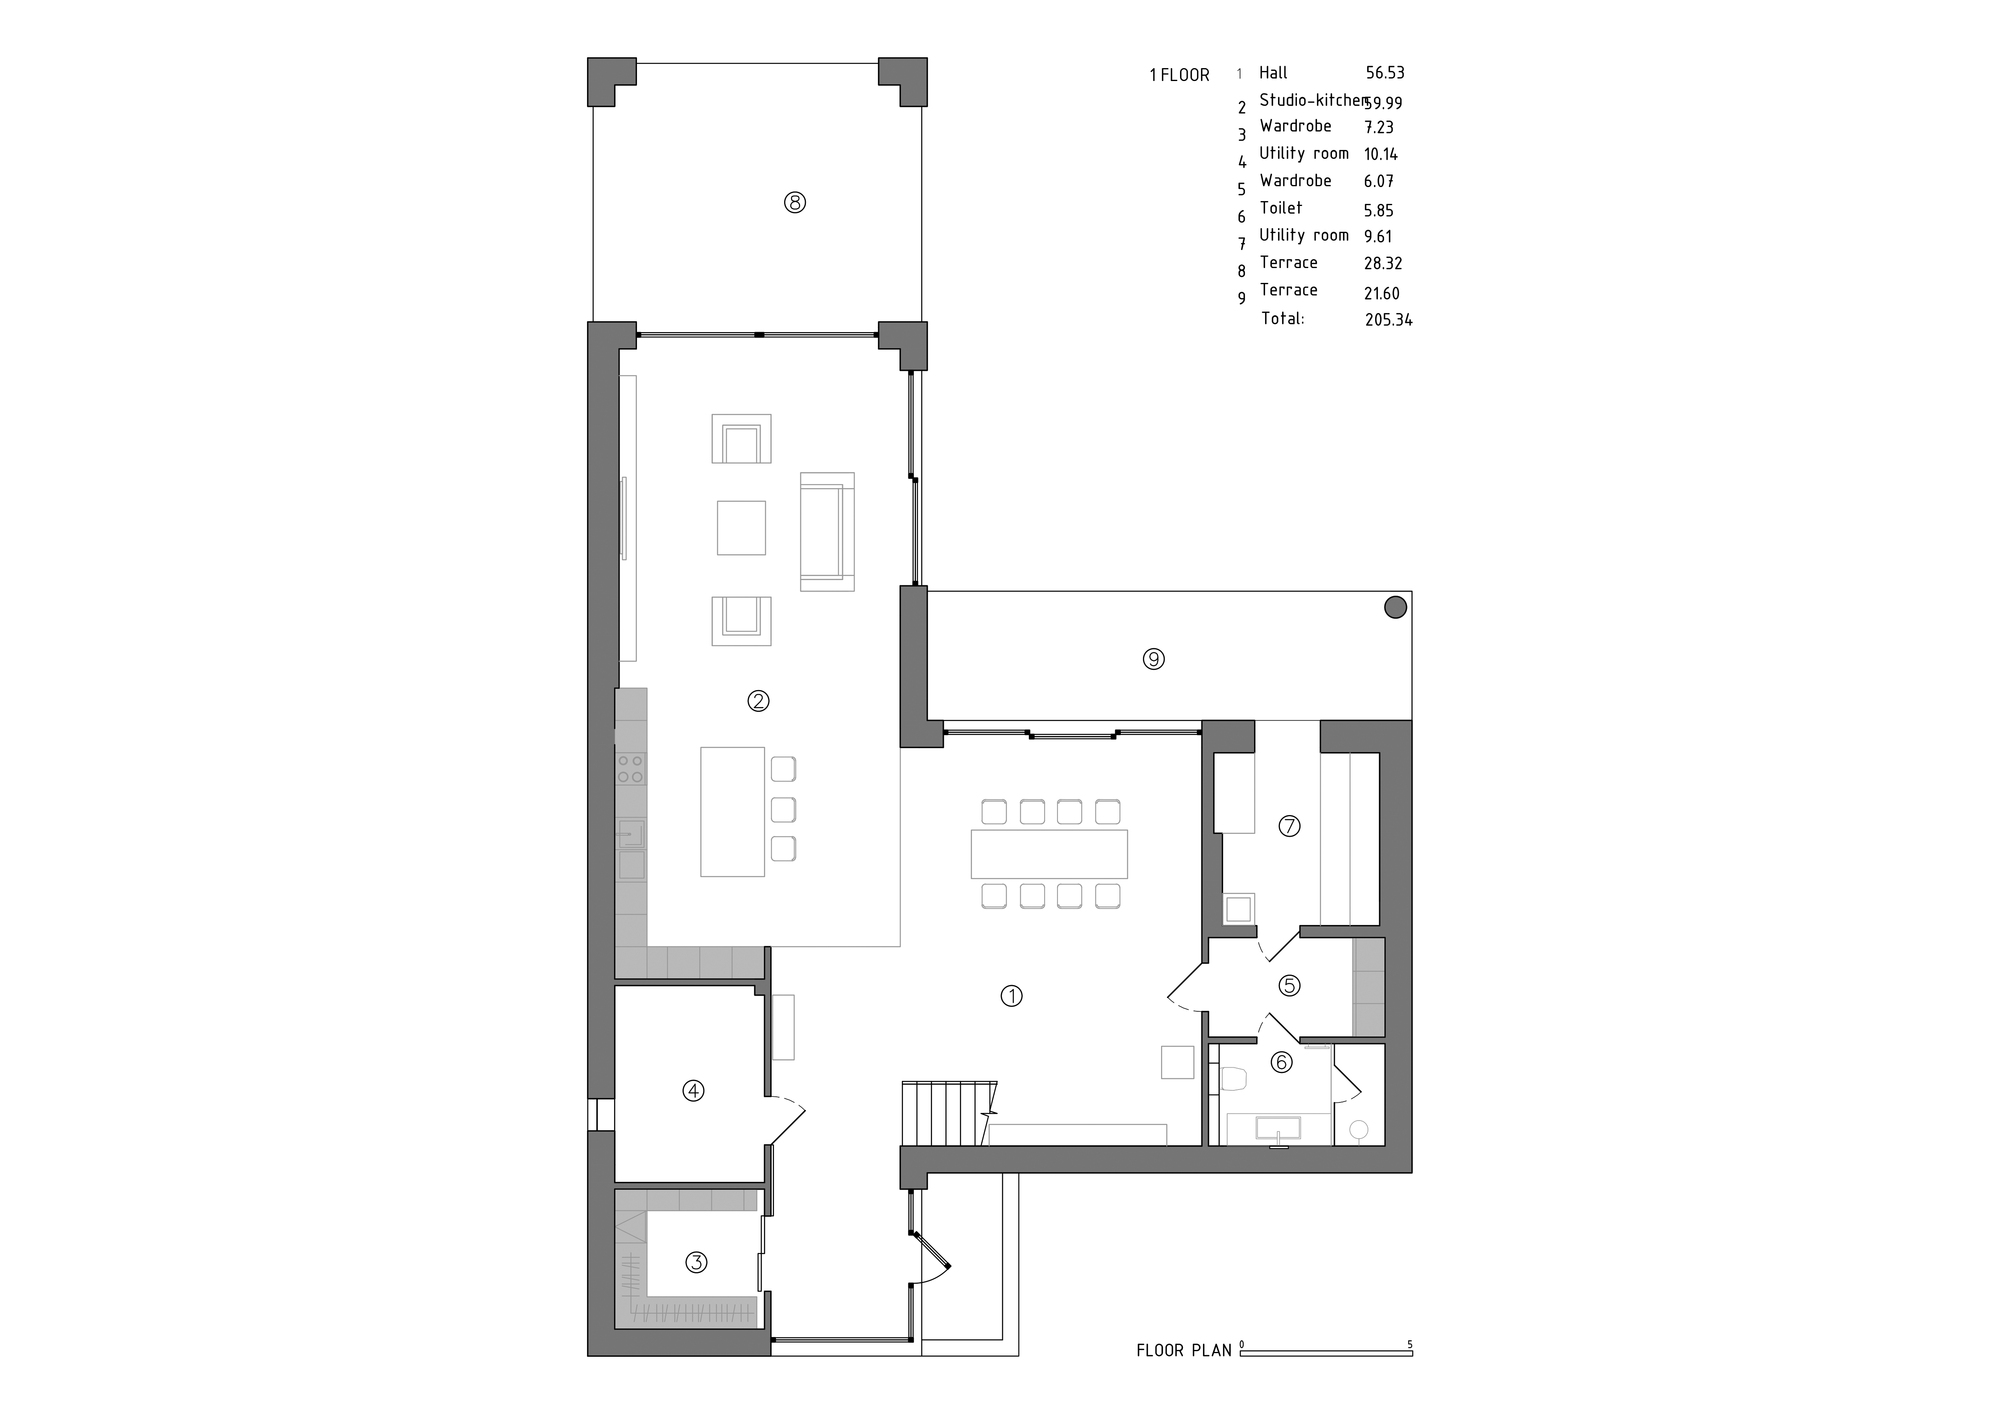 Gallery Of Wh Residence M3 Architects 22